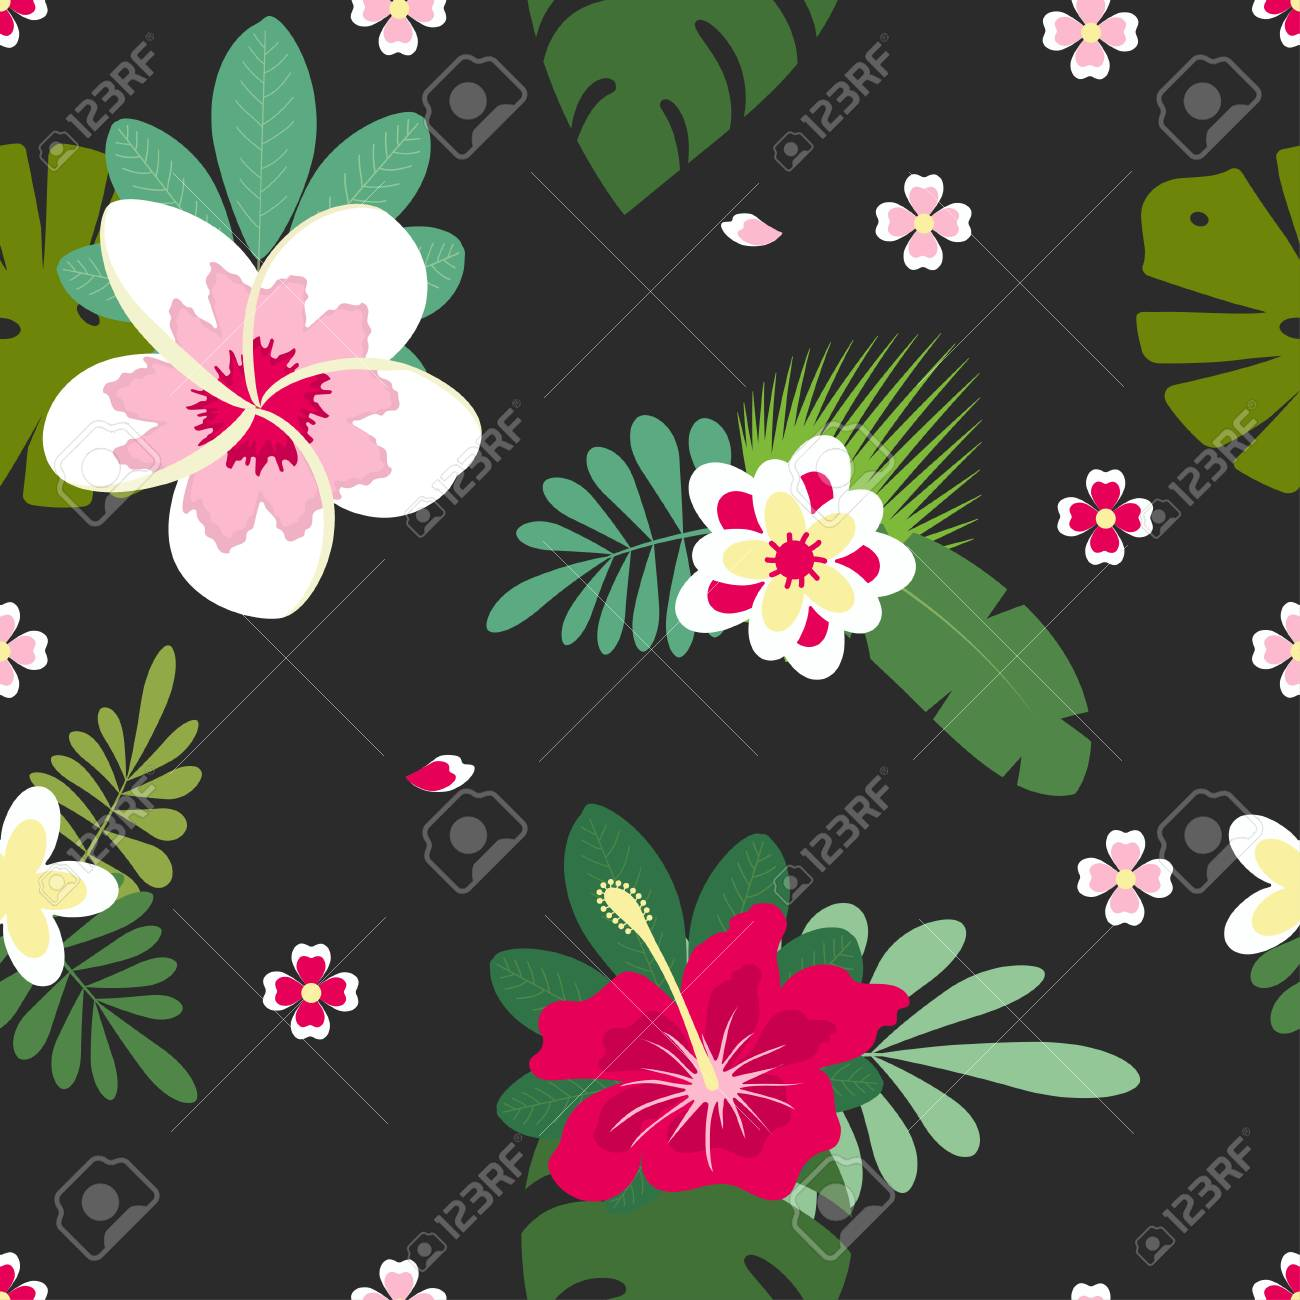 Pink and white hibiscus flowers with palm leaves and plumeria pink and white hibiscus flowers with palm leaves and plumeria on black background hawaiian tropical izmirmasajfo